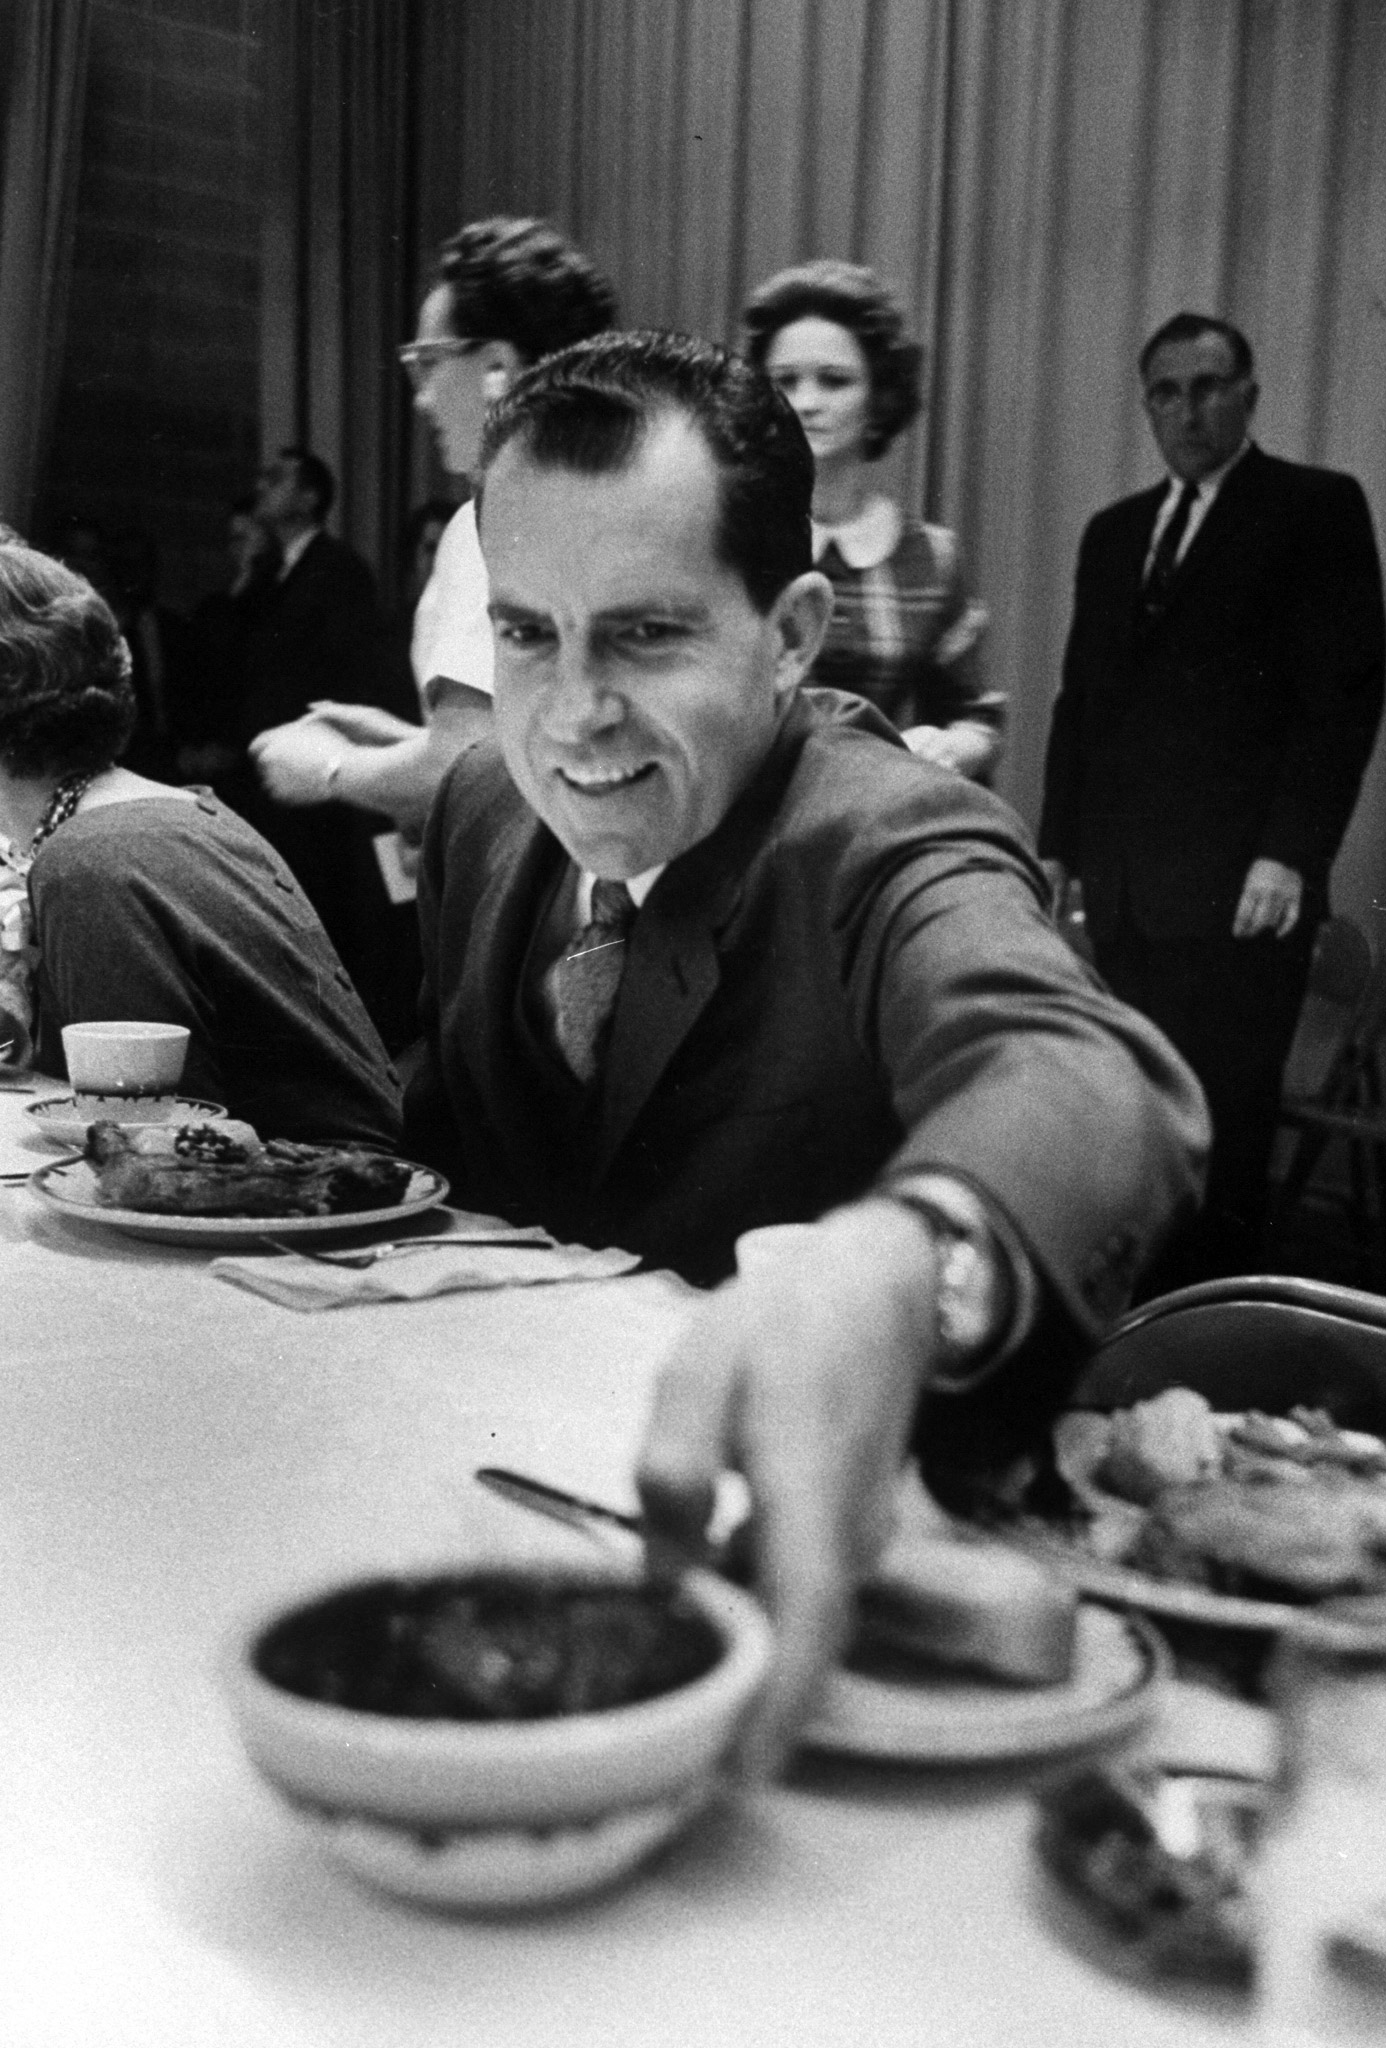 Richard M. Nixon eating cranberries with his meal during campaign. 1959.